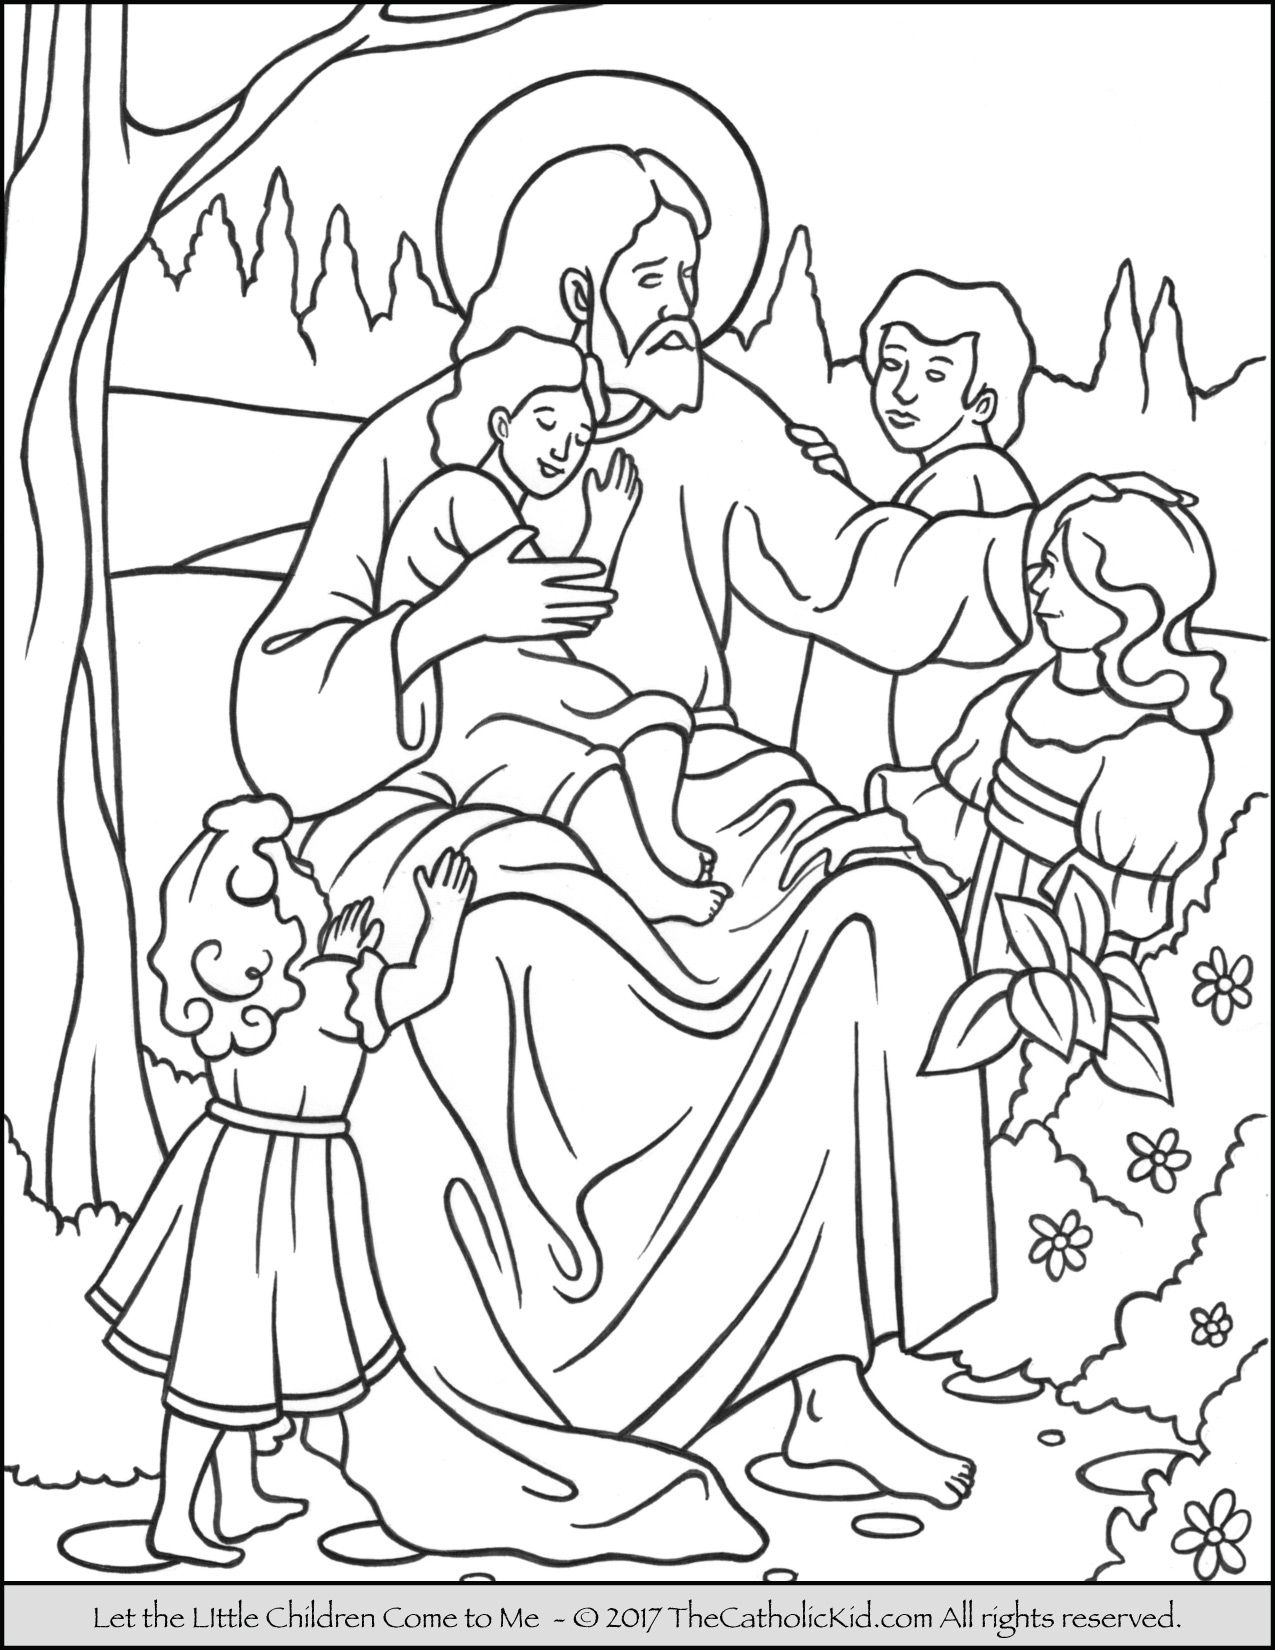 Jesus Let The Little Children Come To Me Coloring Page Jesus Coloring Pages Kids Printable Coloring Pages Bible Coloring Pages